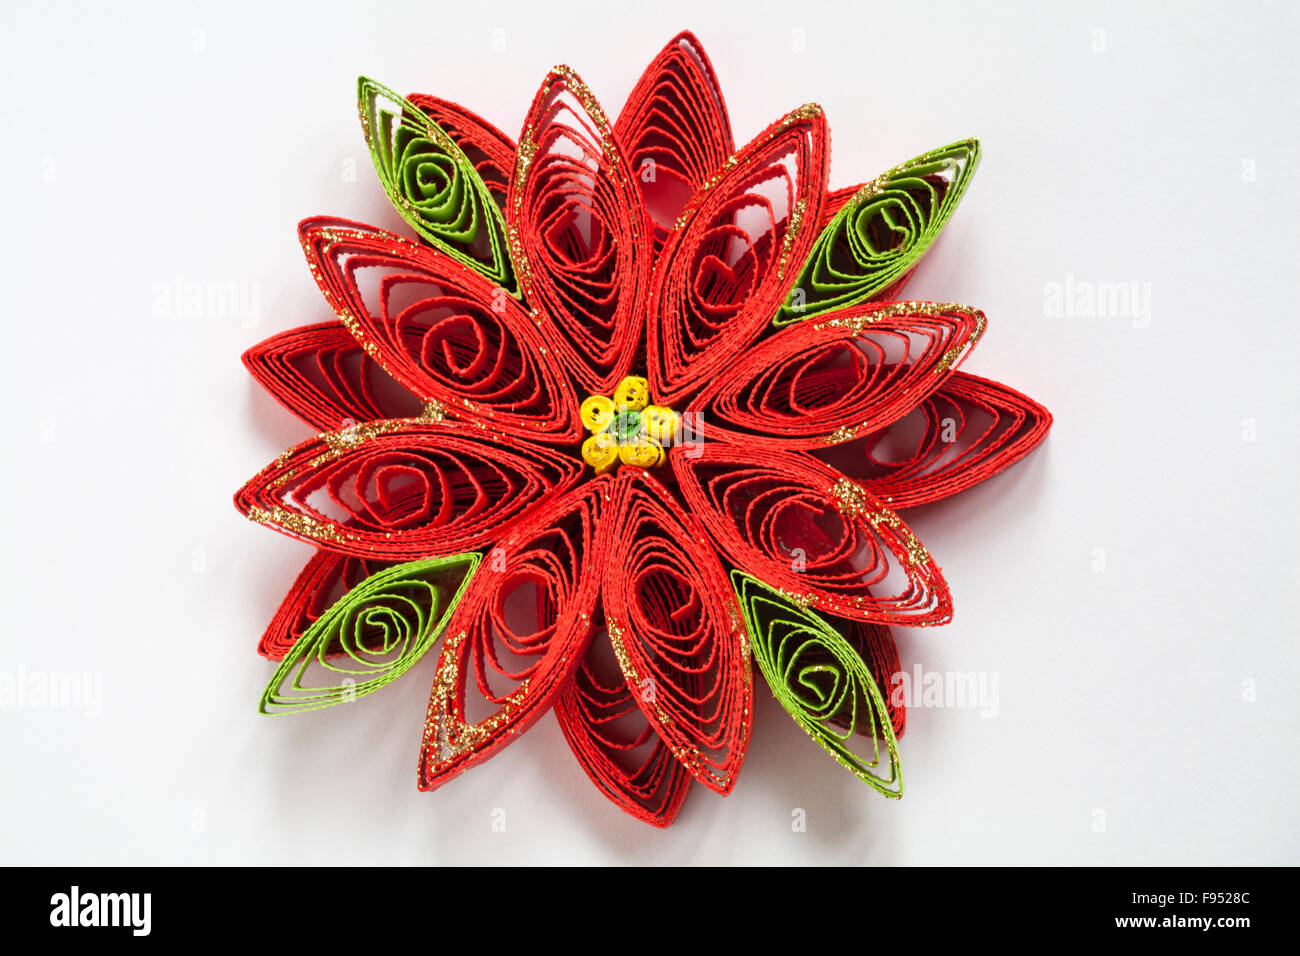 Paper Quilling Detail Of Christmas Poinsettia Flower Paper